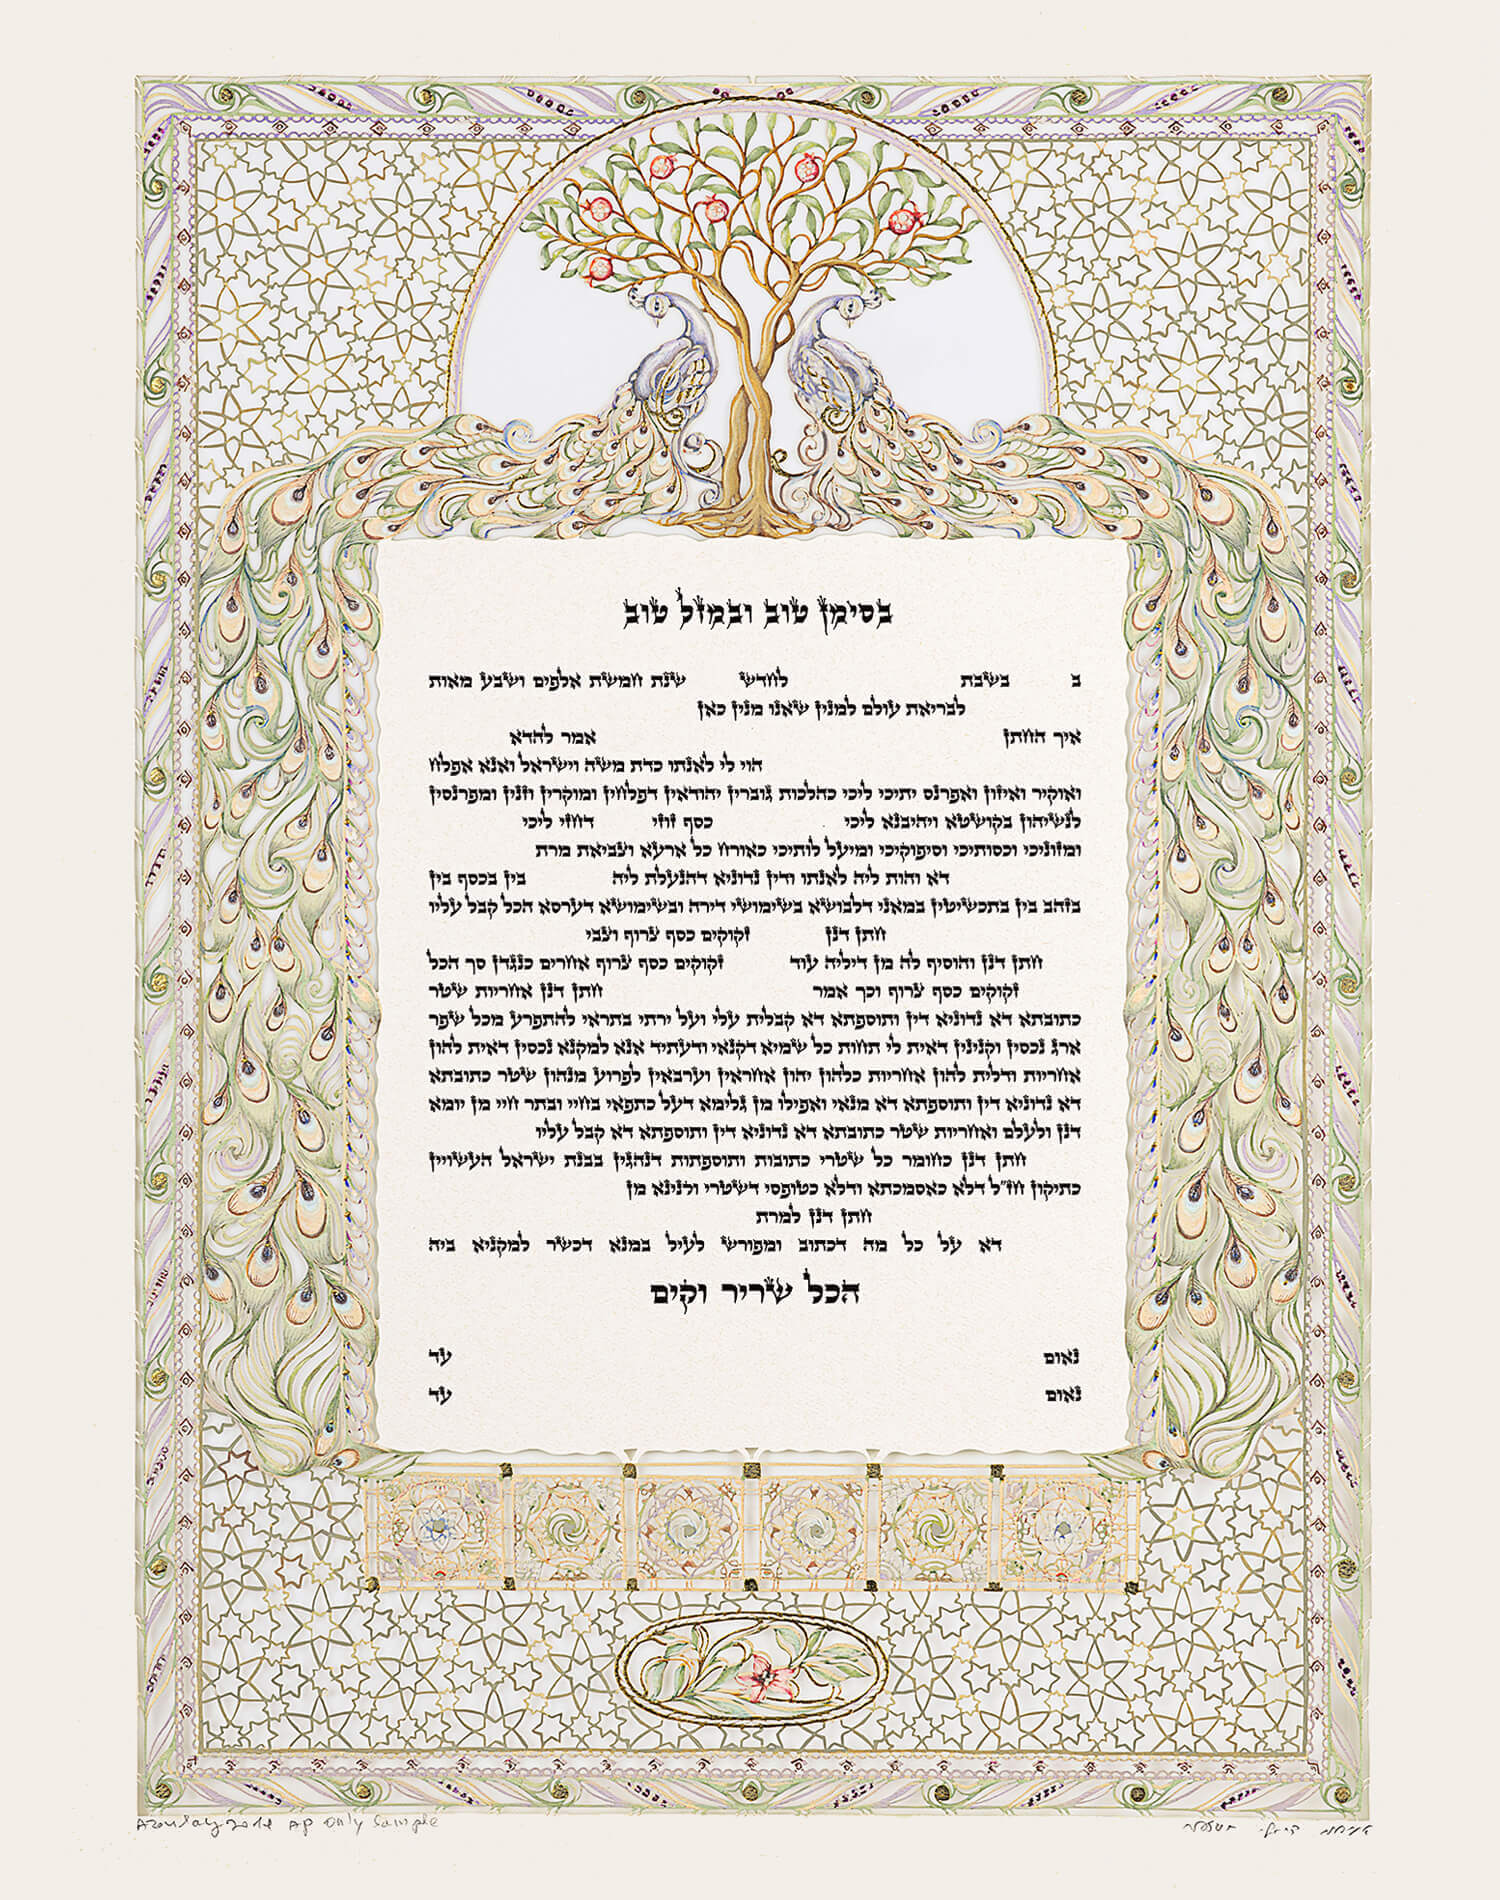 This is a full size image of the peacock ketubah that is available in Canada and the US